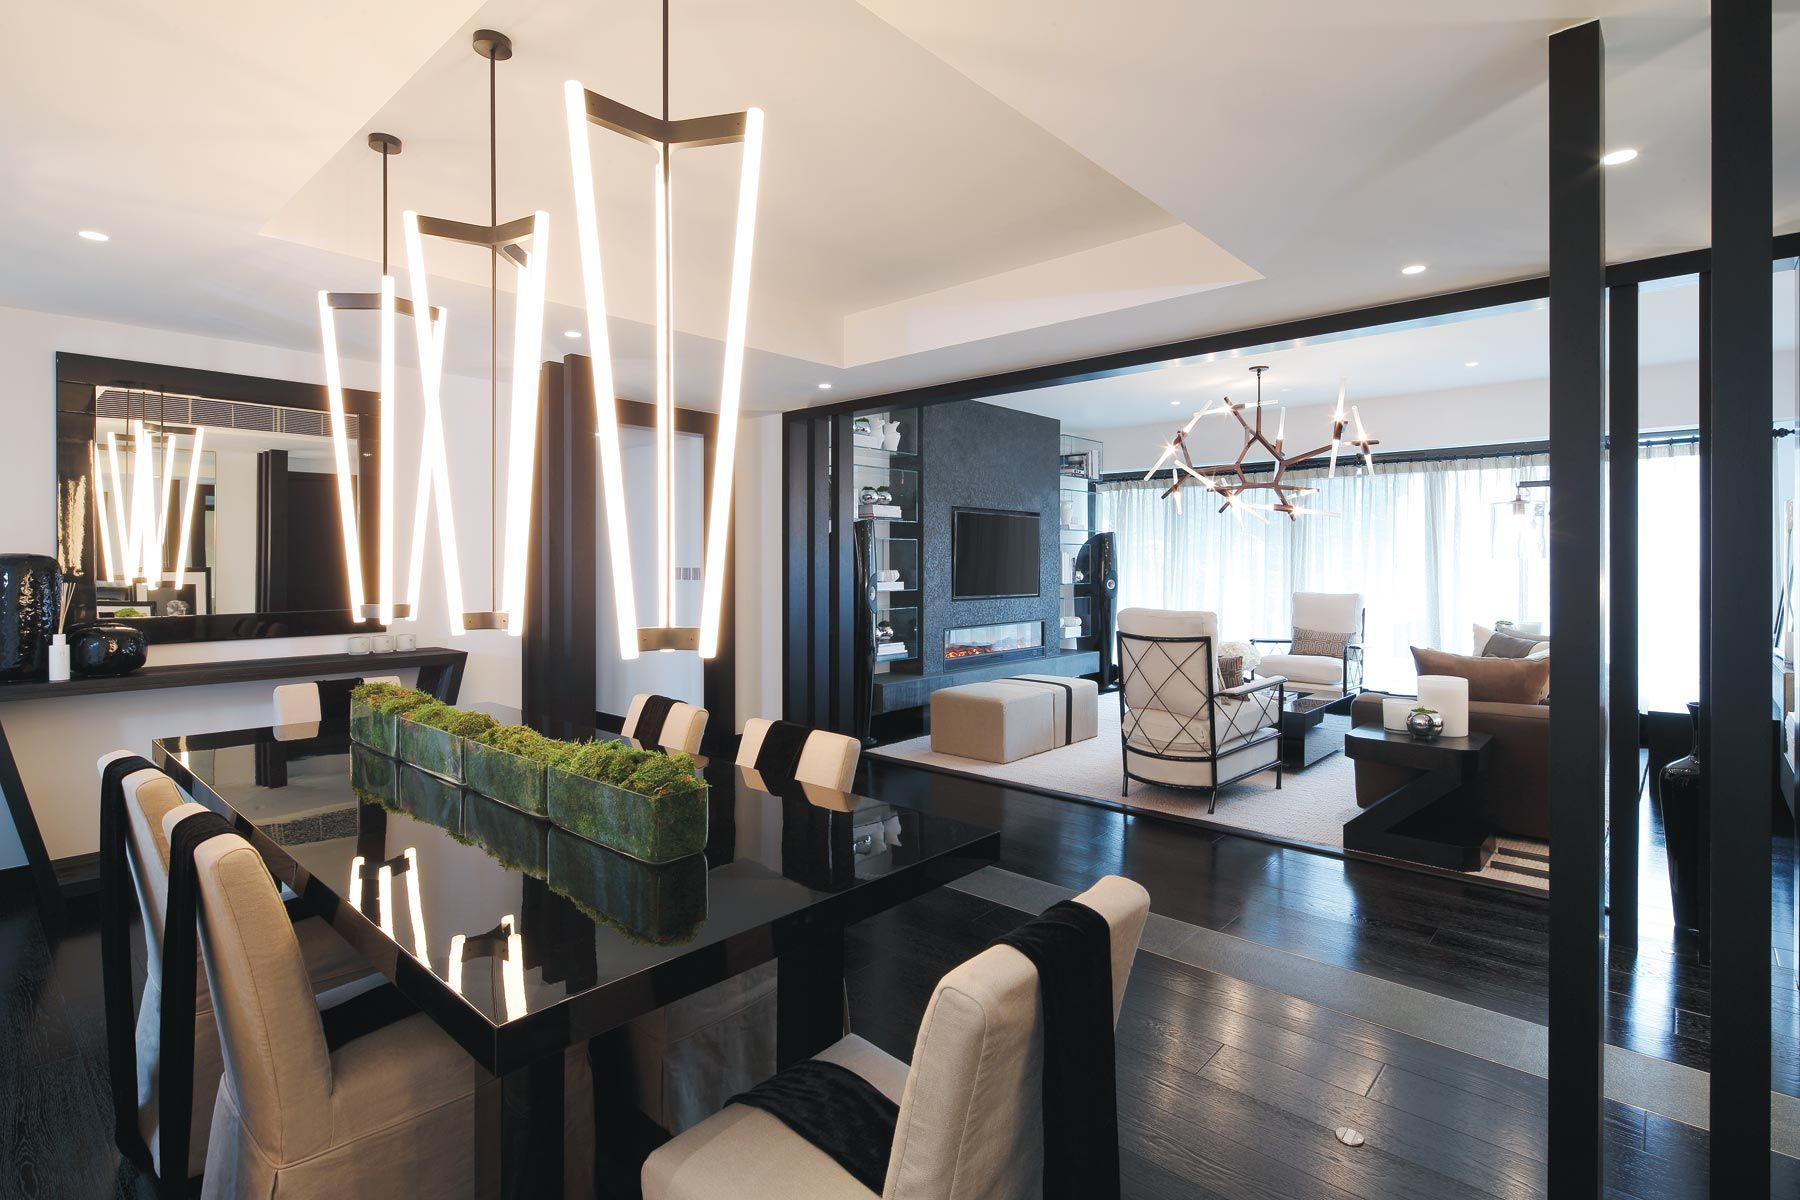 This interior design project by kelly hoppen was set in hong kong and has a lot of personality in it